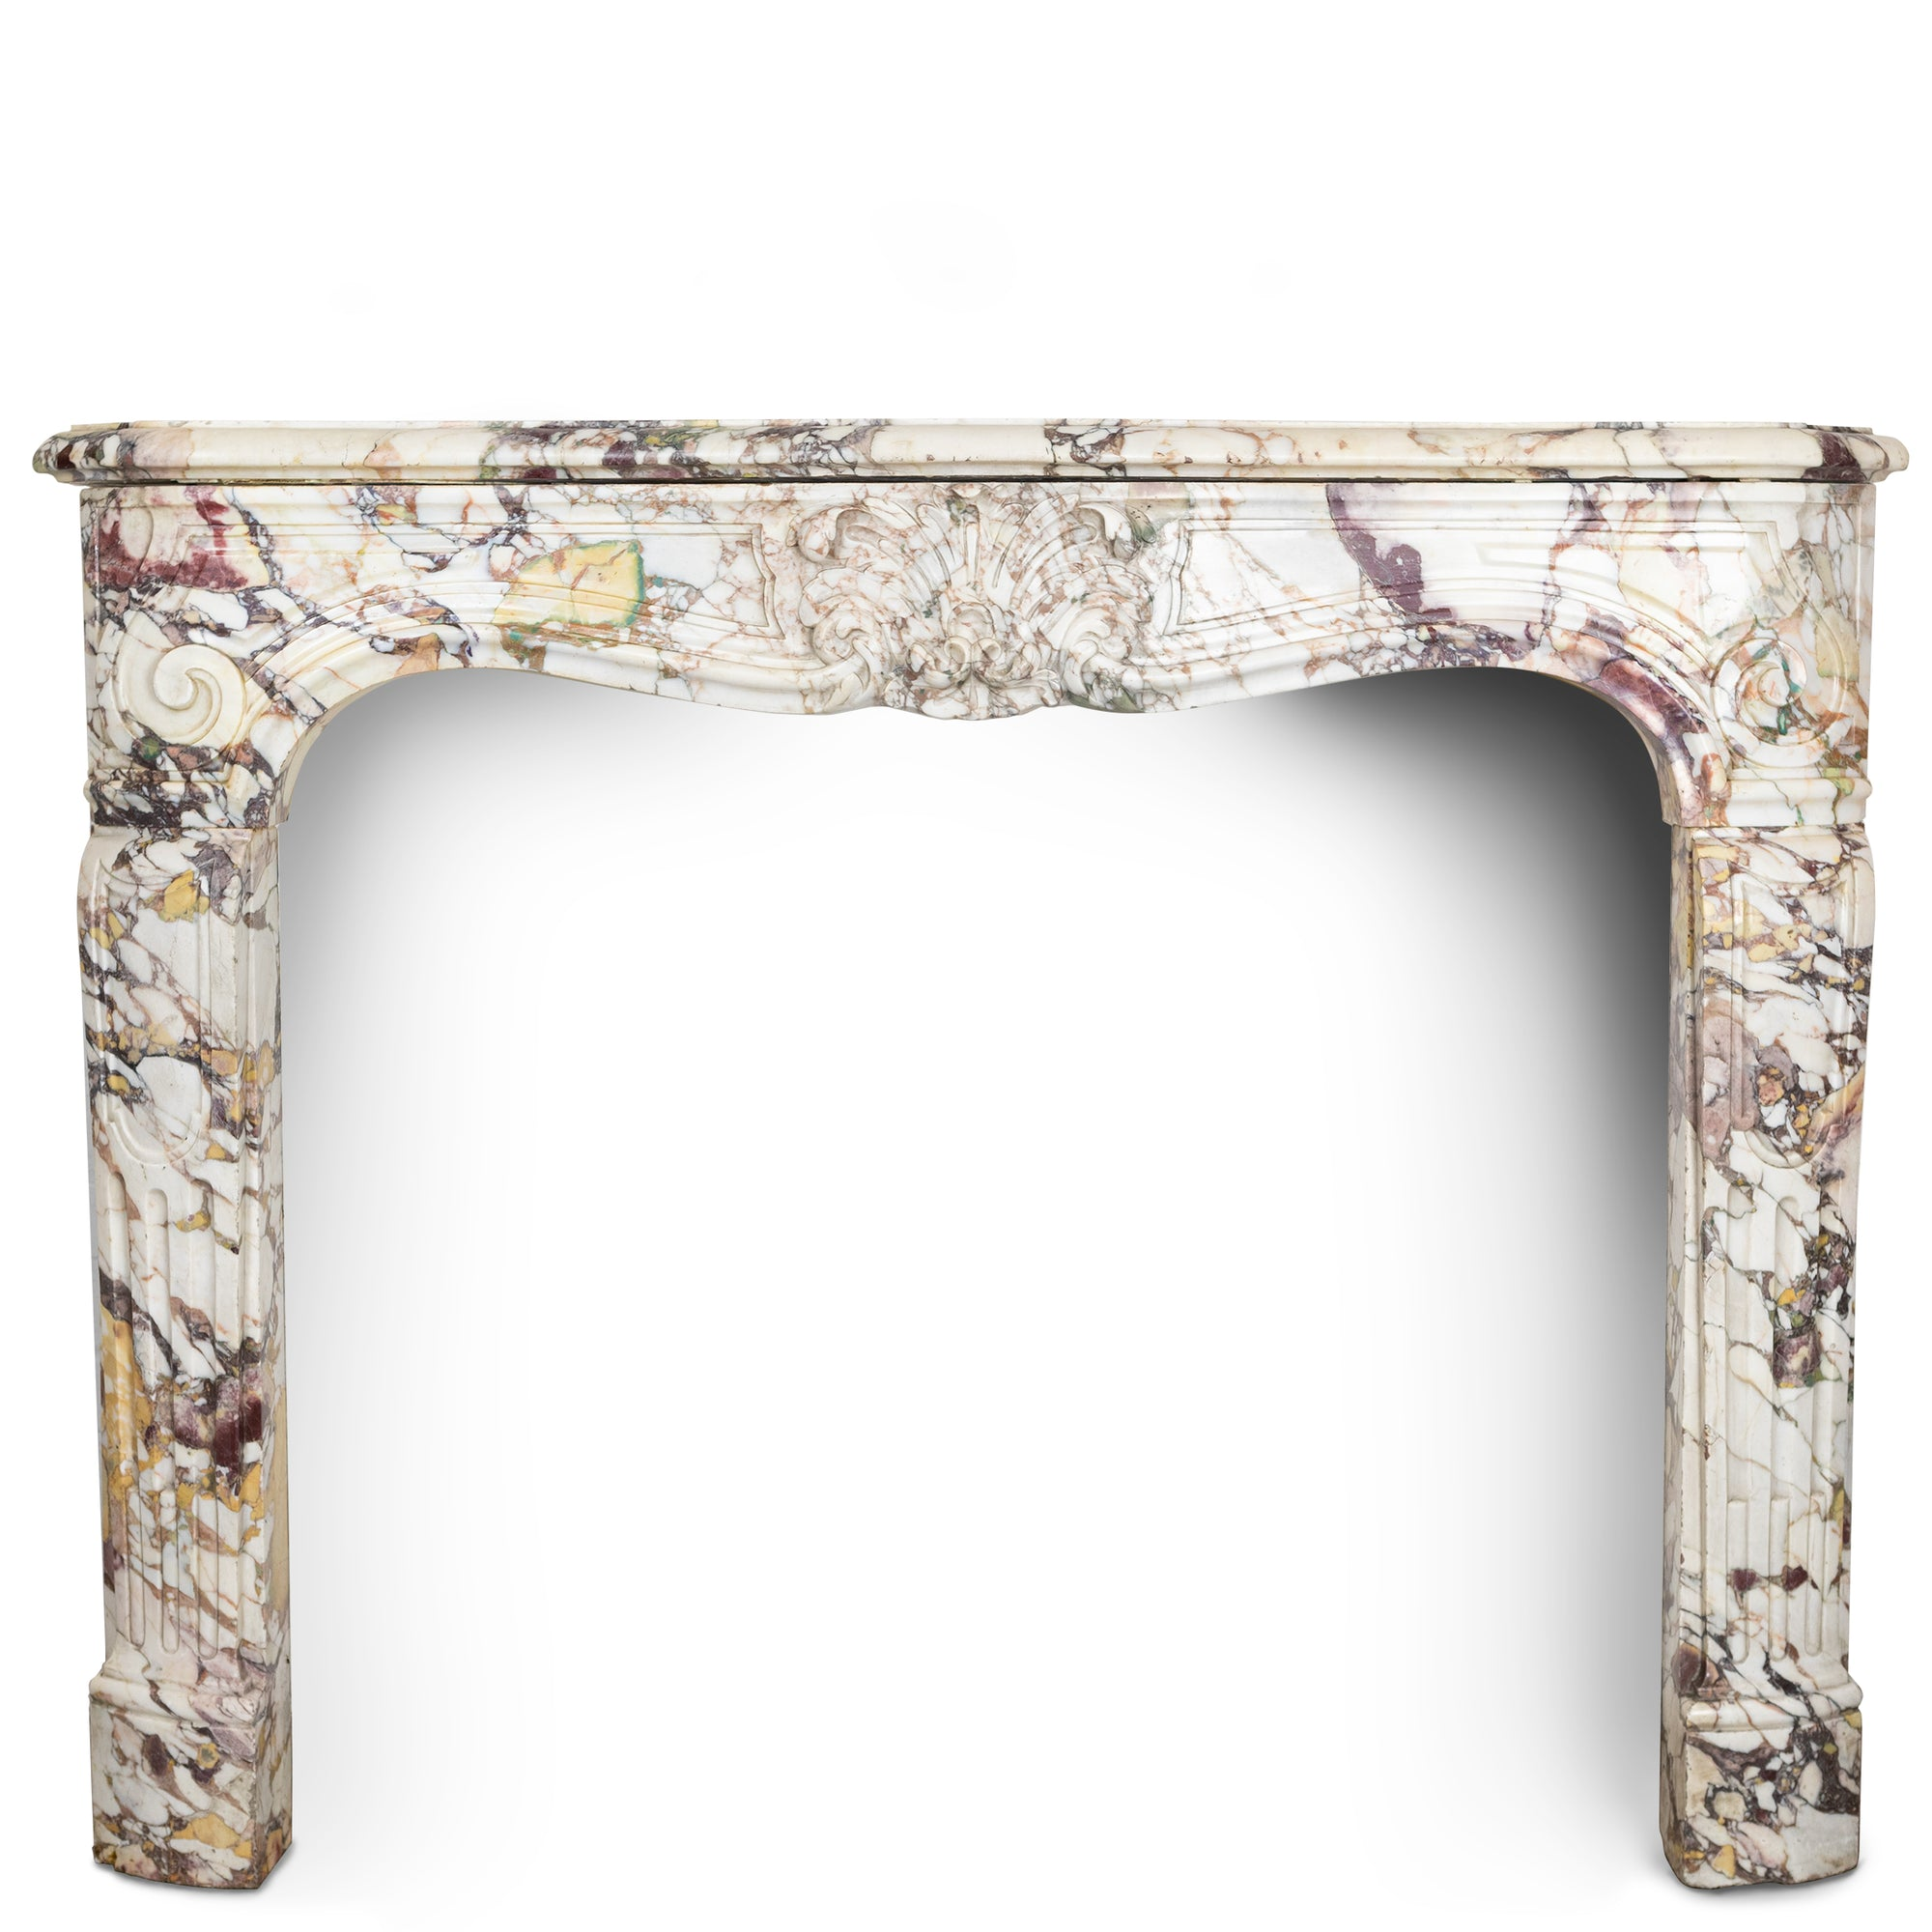 Antique Breche Marble Louis Style Fireplace Surround | The Architectural Forum